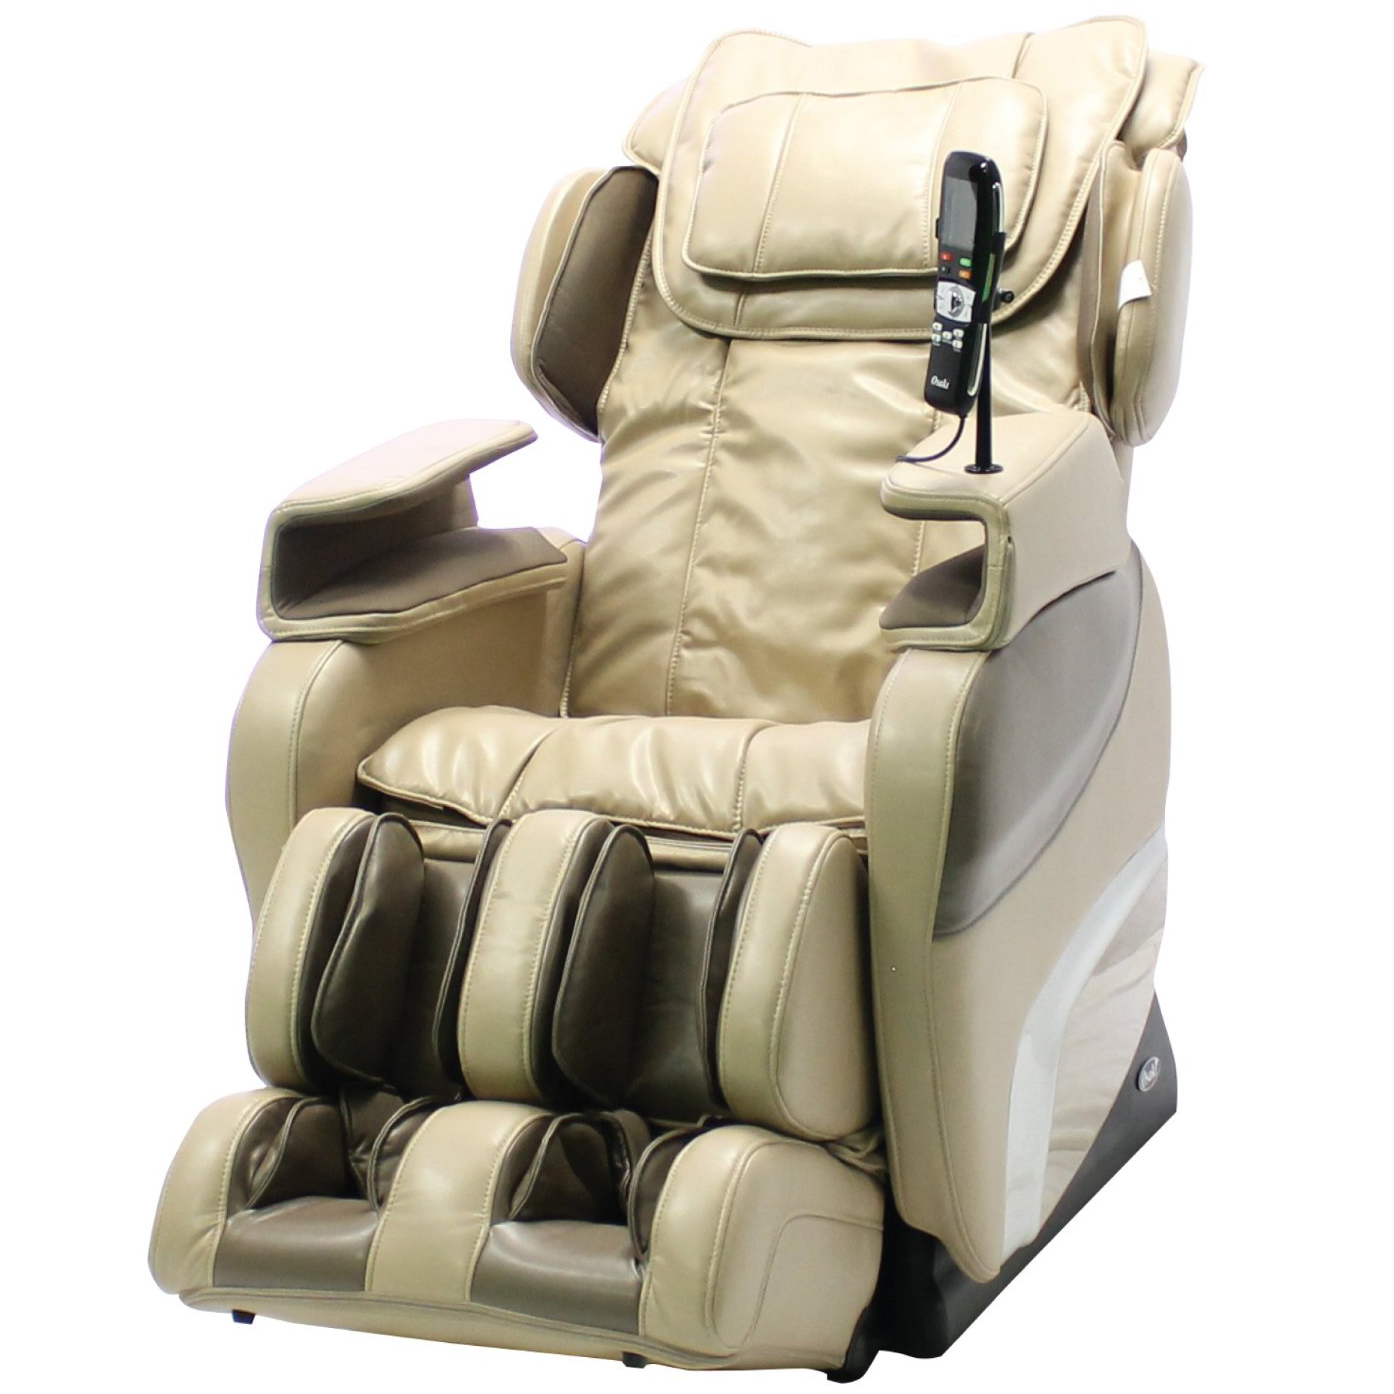 Osaki Massage Chair | Massage Chair Retailers | Massage Chair Costco Human Touch